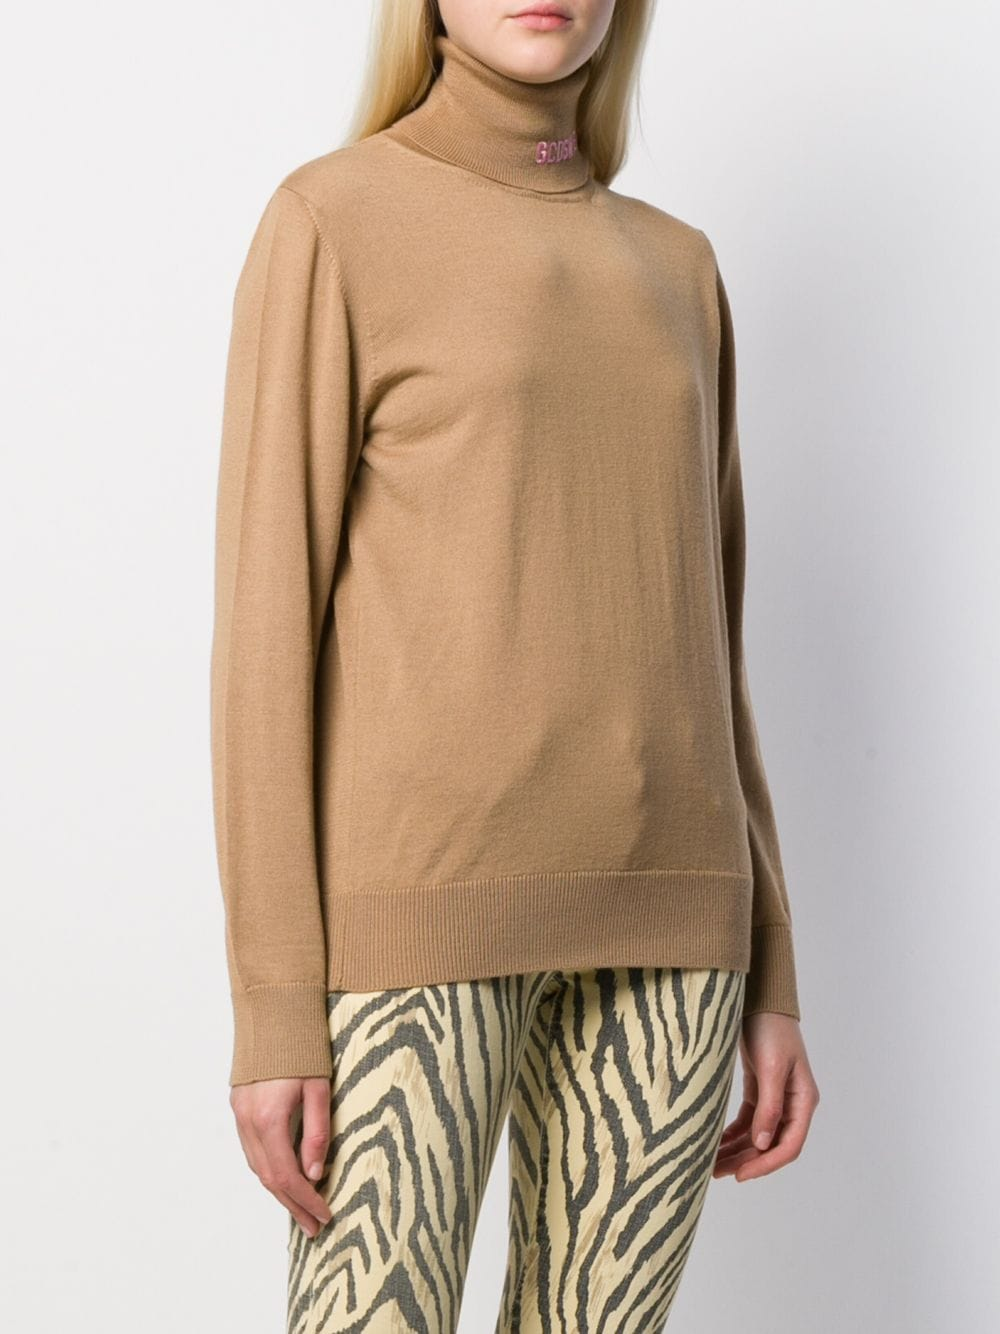 GCDS Logo Print Turtleneck Sweater